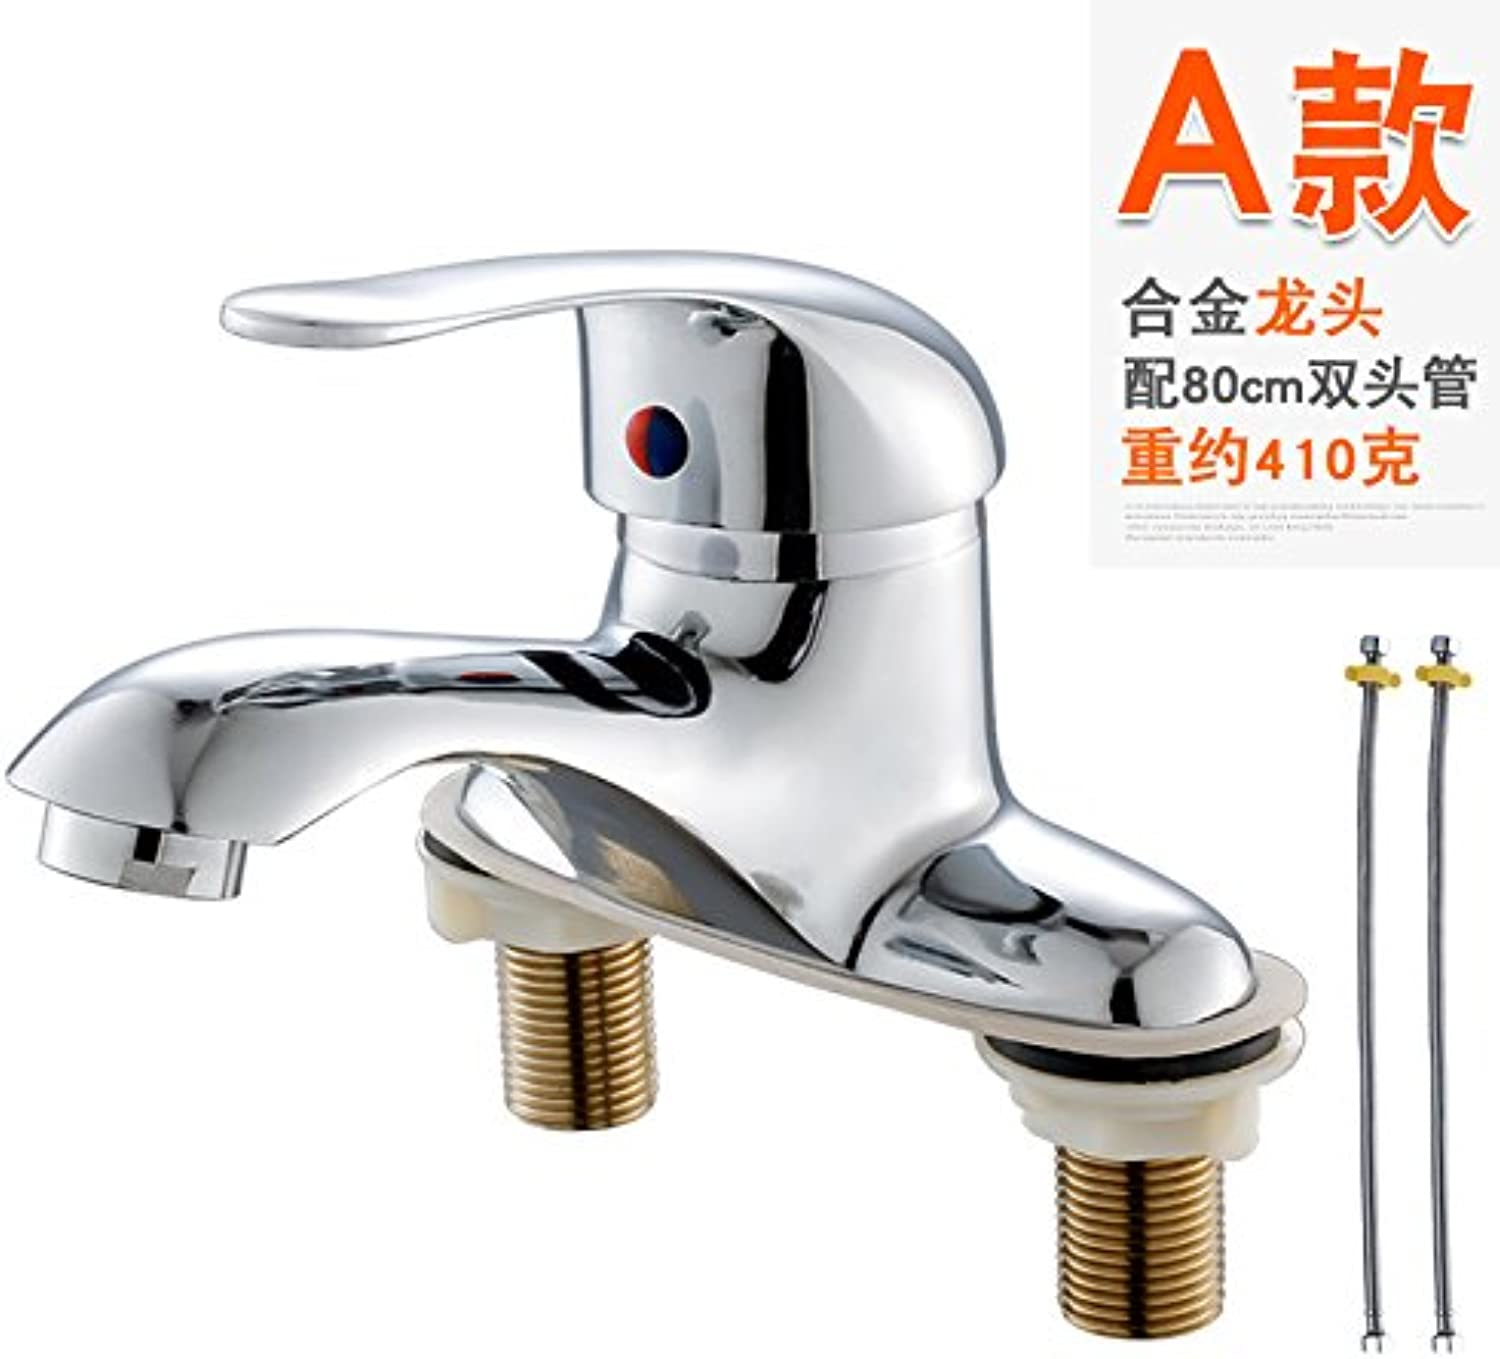 PajCzh Bathroom Fixturesthree-Hole Water Bath Universal Double-Head Faucet Pure Copper Wall-Mounted Hot And Cold Water Heater Mixing Valve Nozzle, A Alloy Double Hole Faucet +80 Double Head Tube